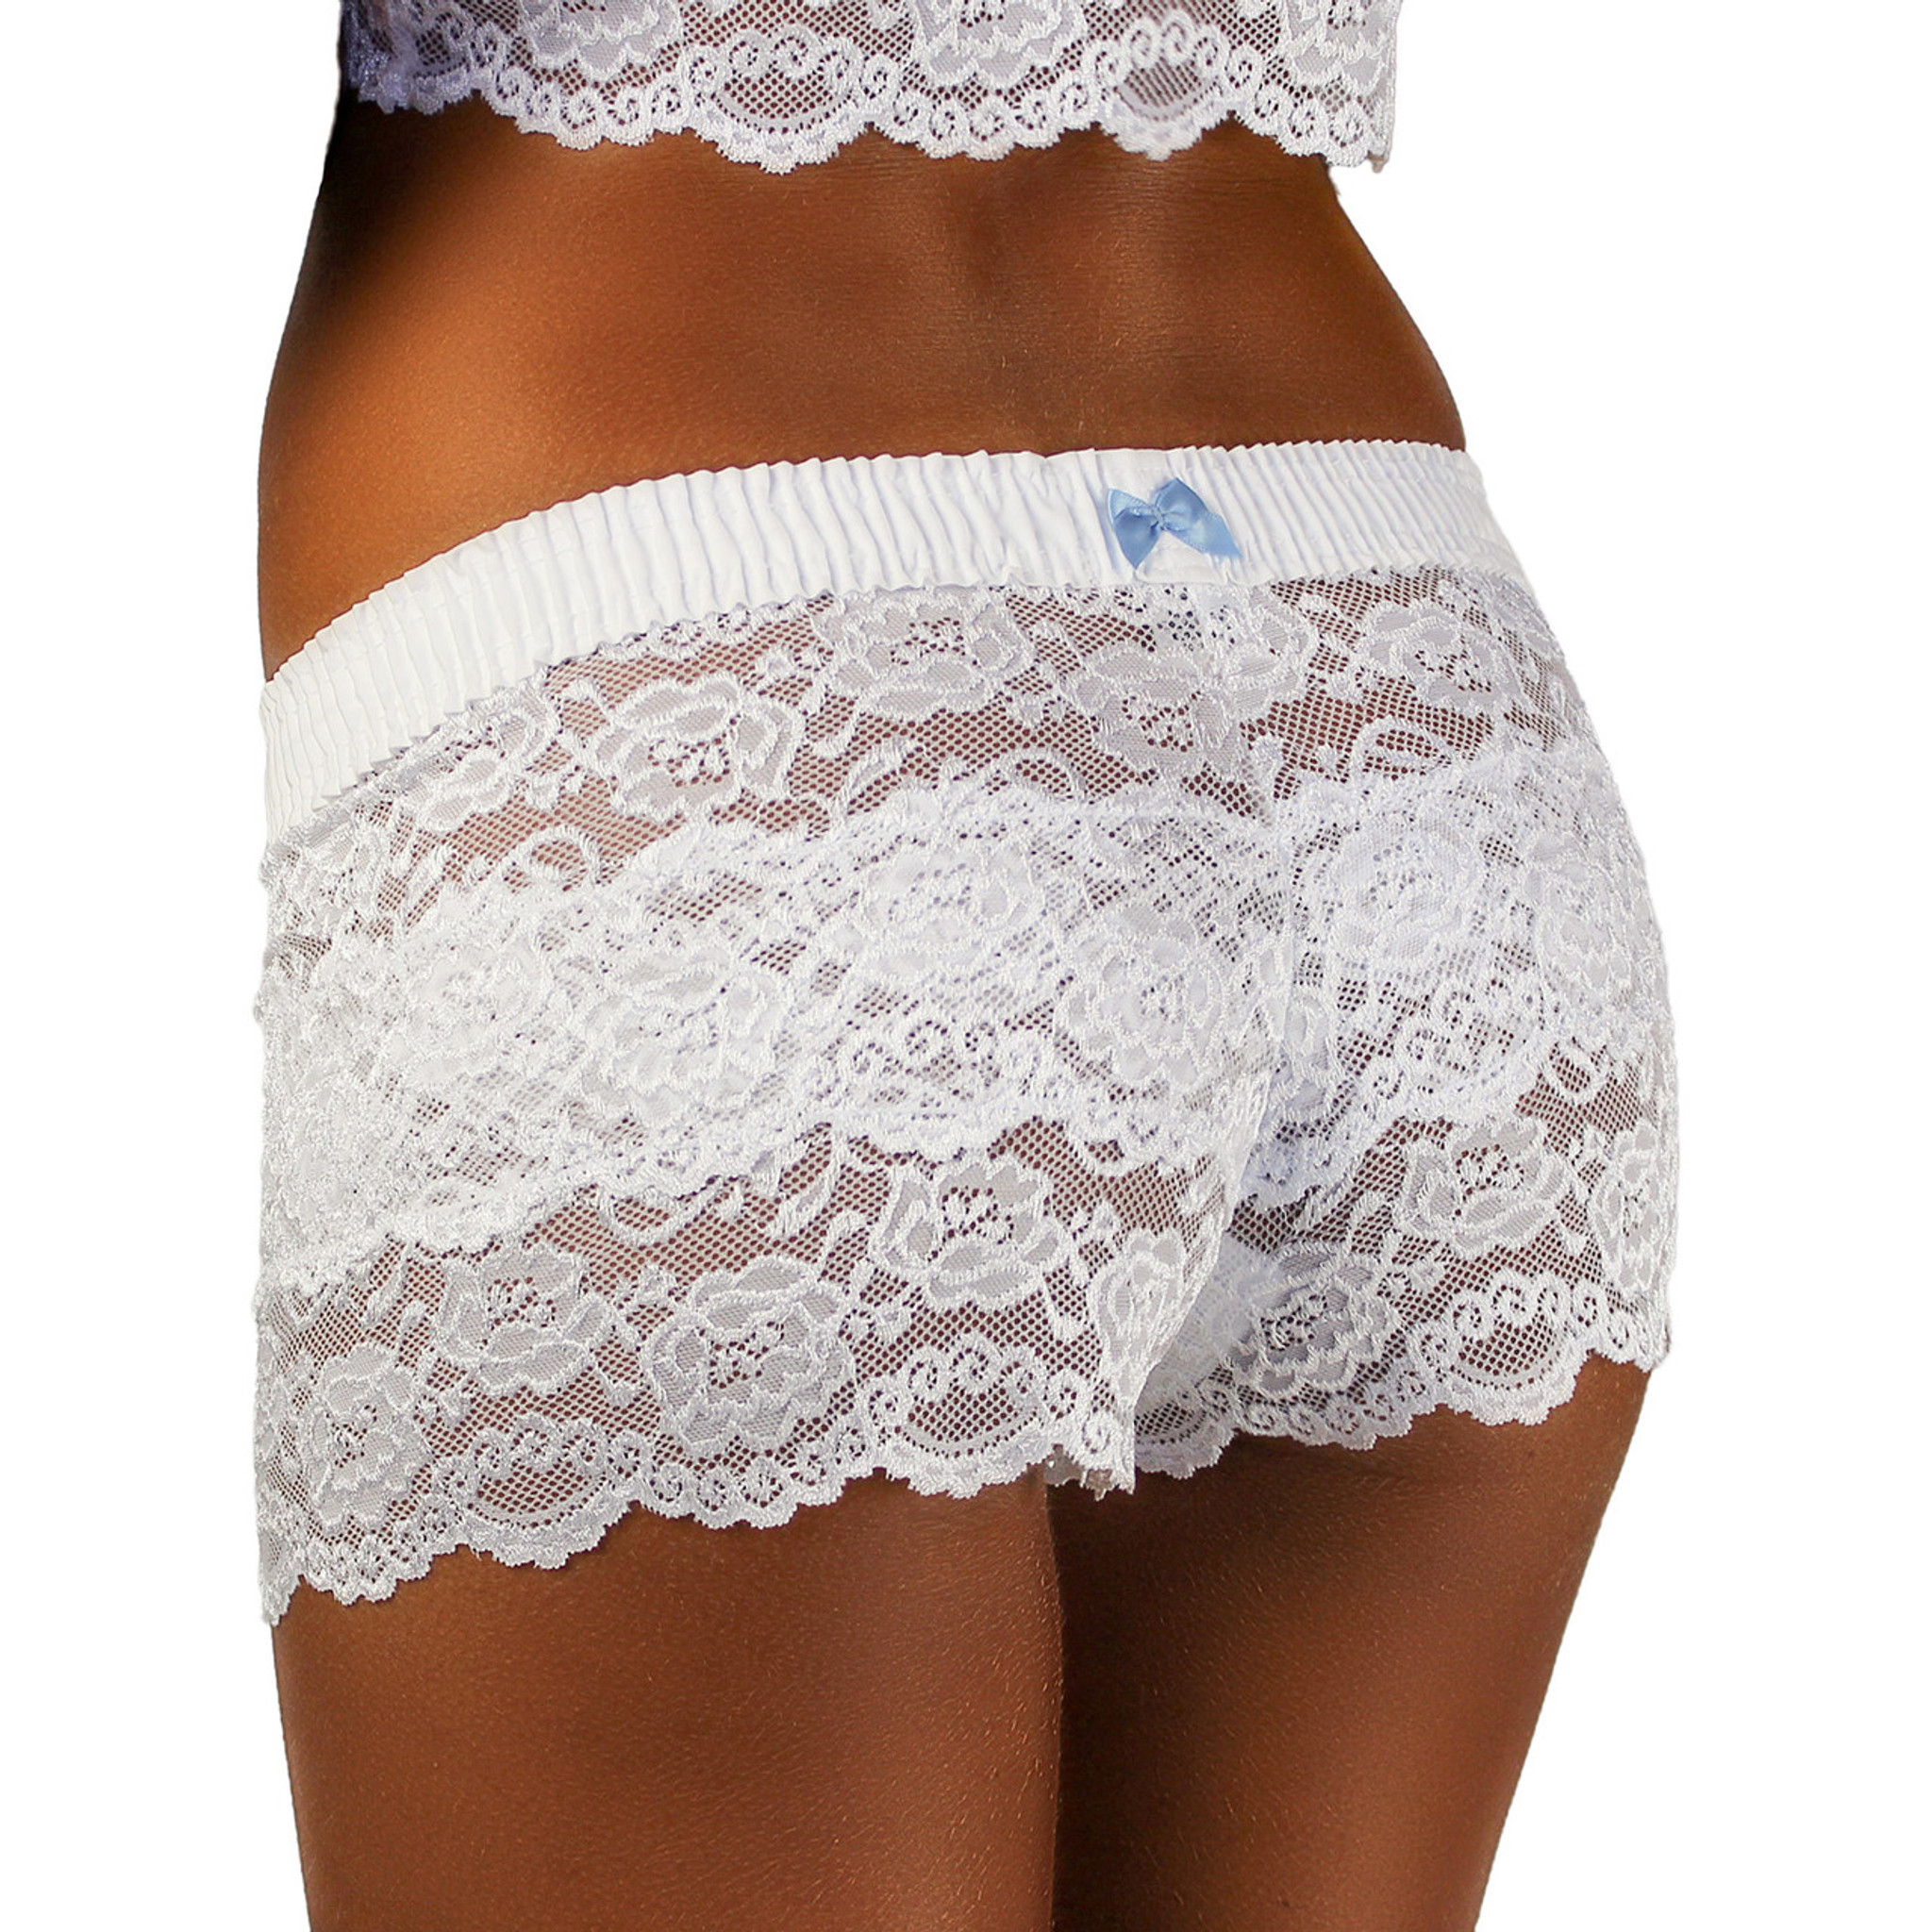 f35c0430c ... Ladies White Lace Boxer Boyshorts with light Blue bow. Great for Wedding  Lingerie!